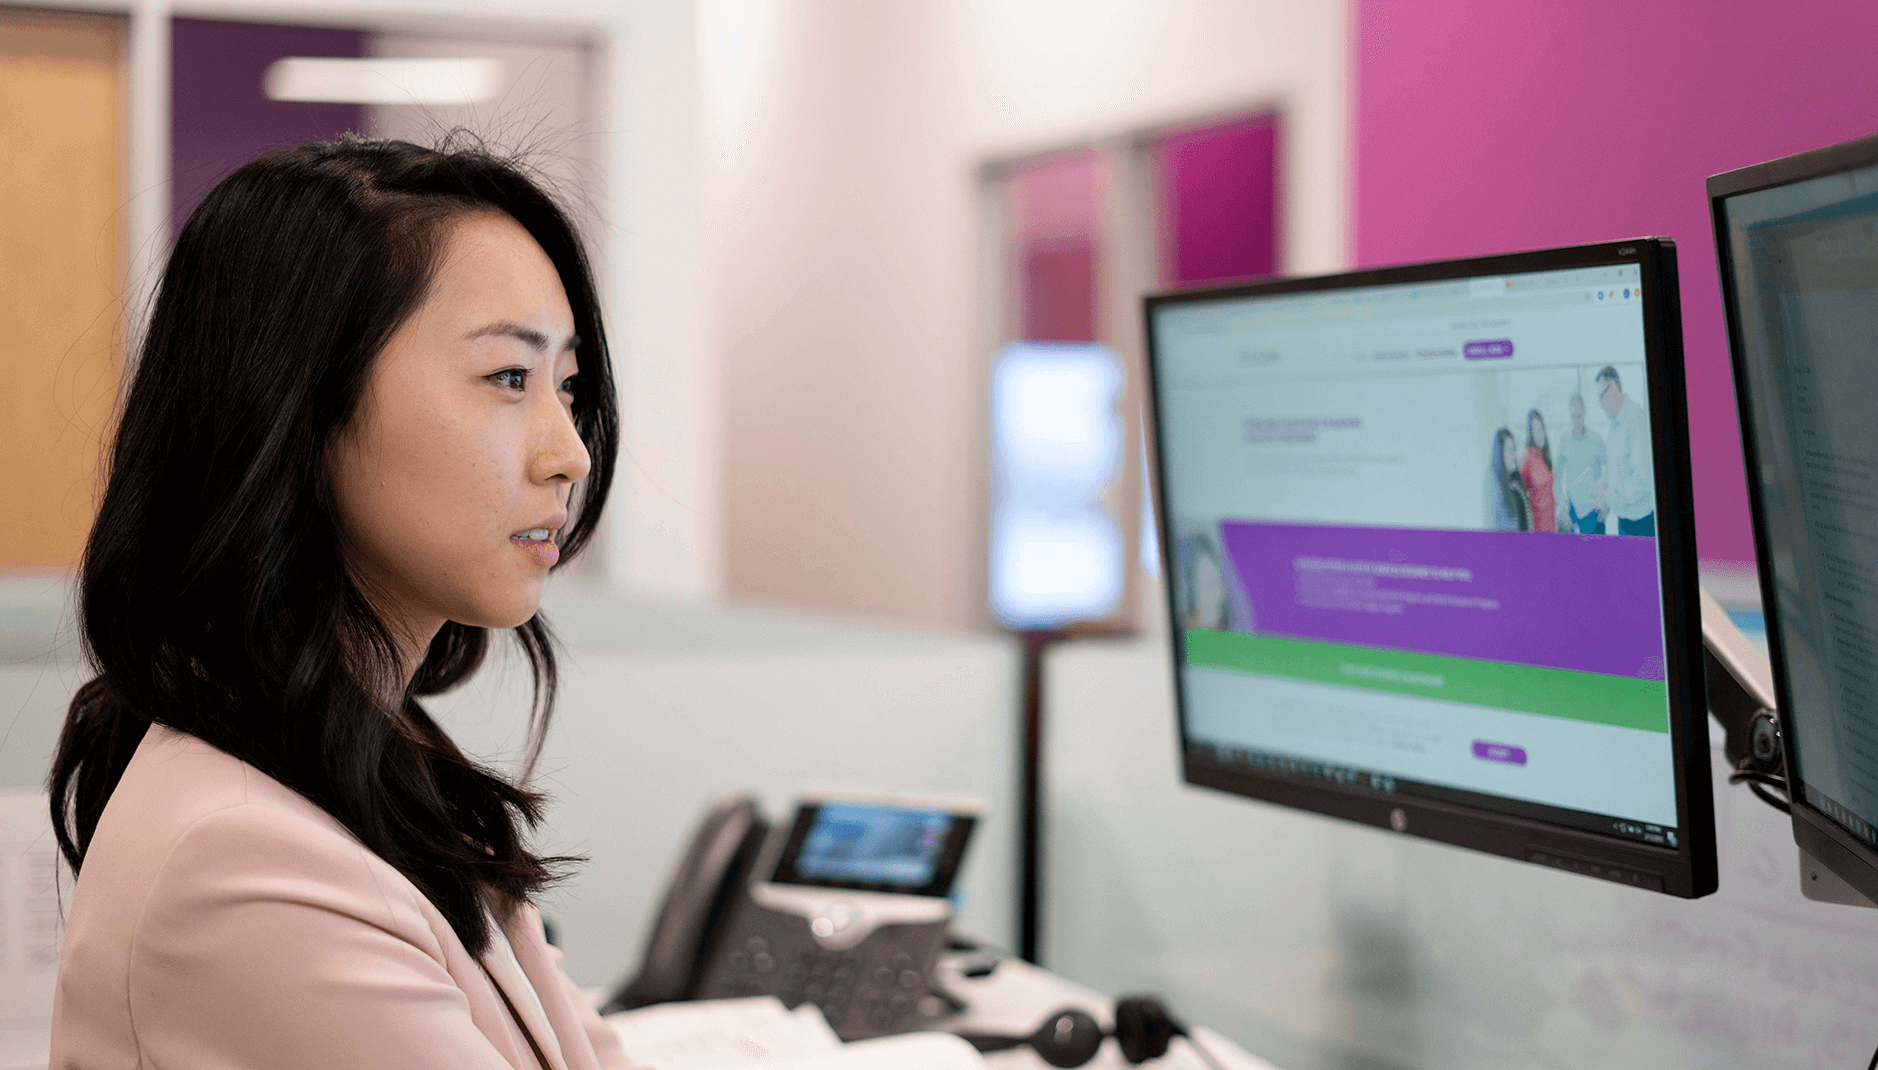 UltraCare Patient Services provides information about how to access CRYSVITA